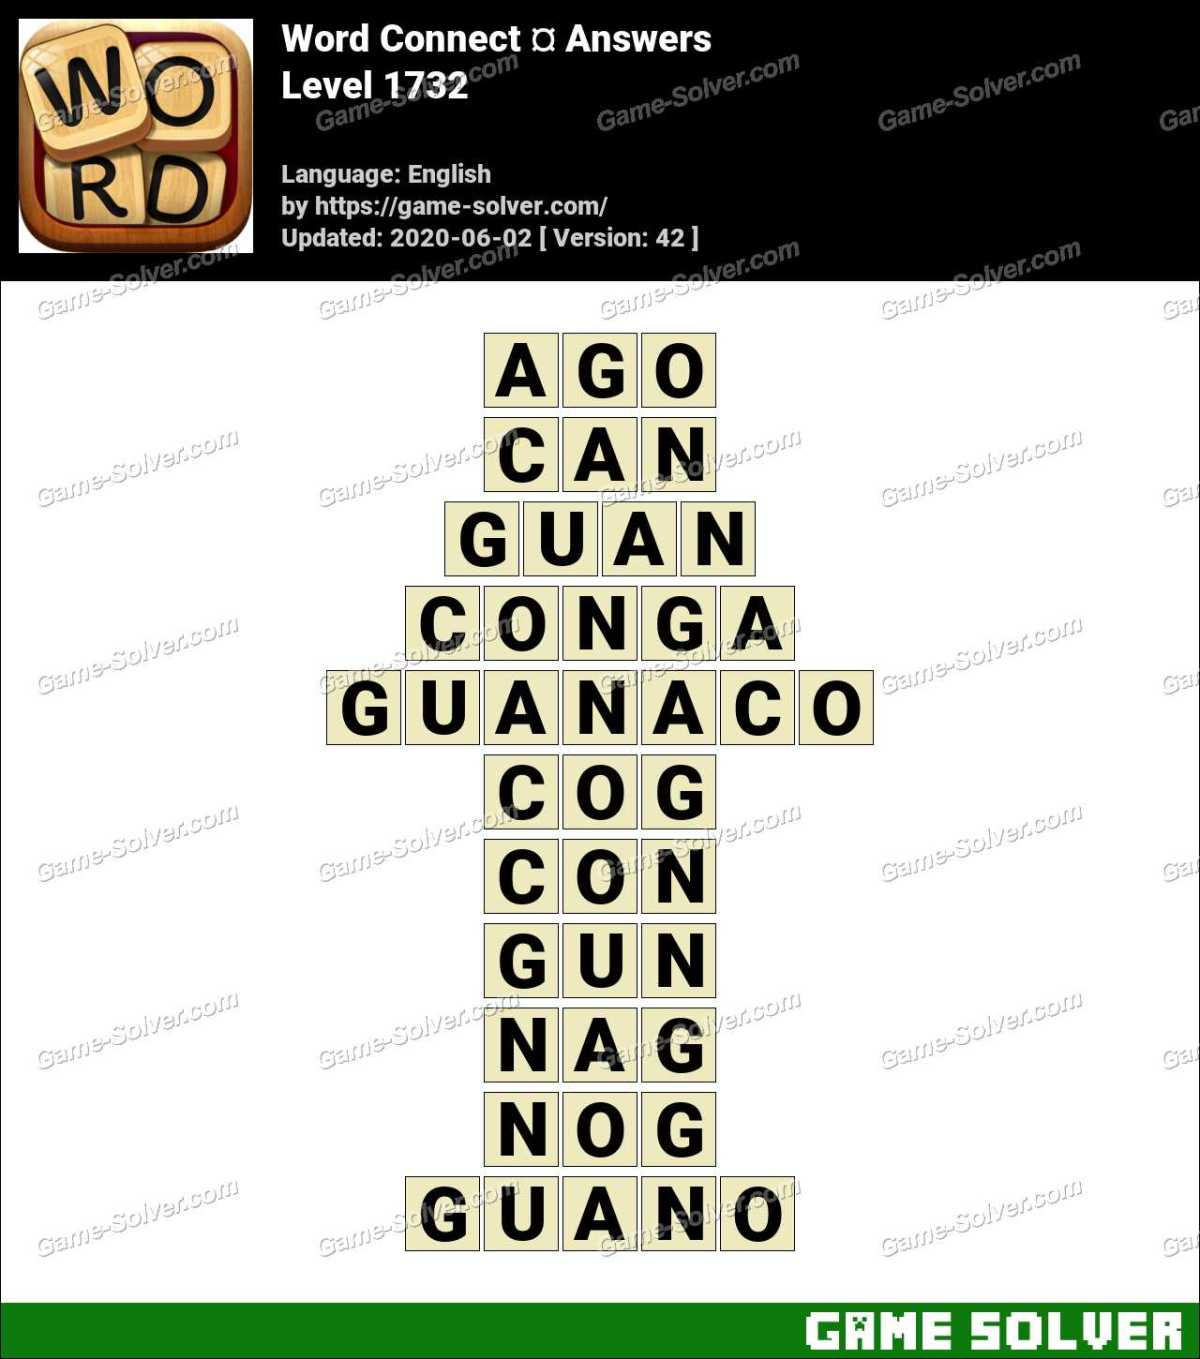 Word Connect Level 1732 Answers